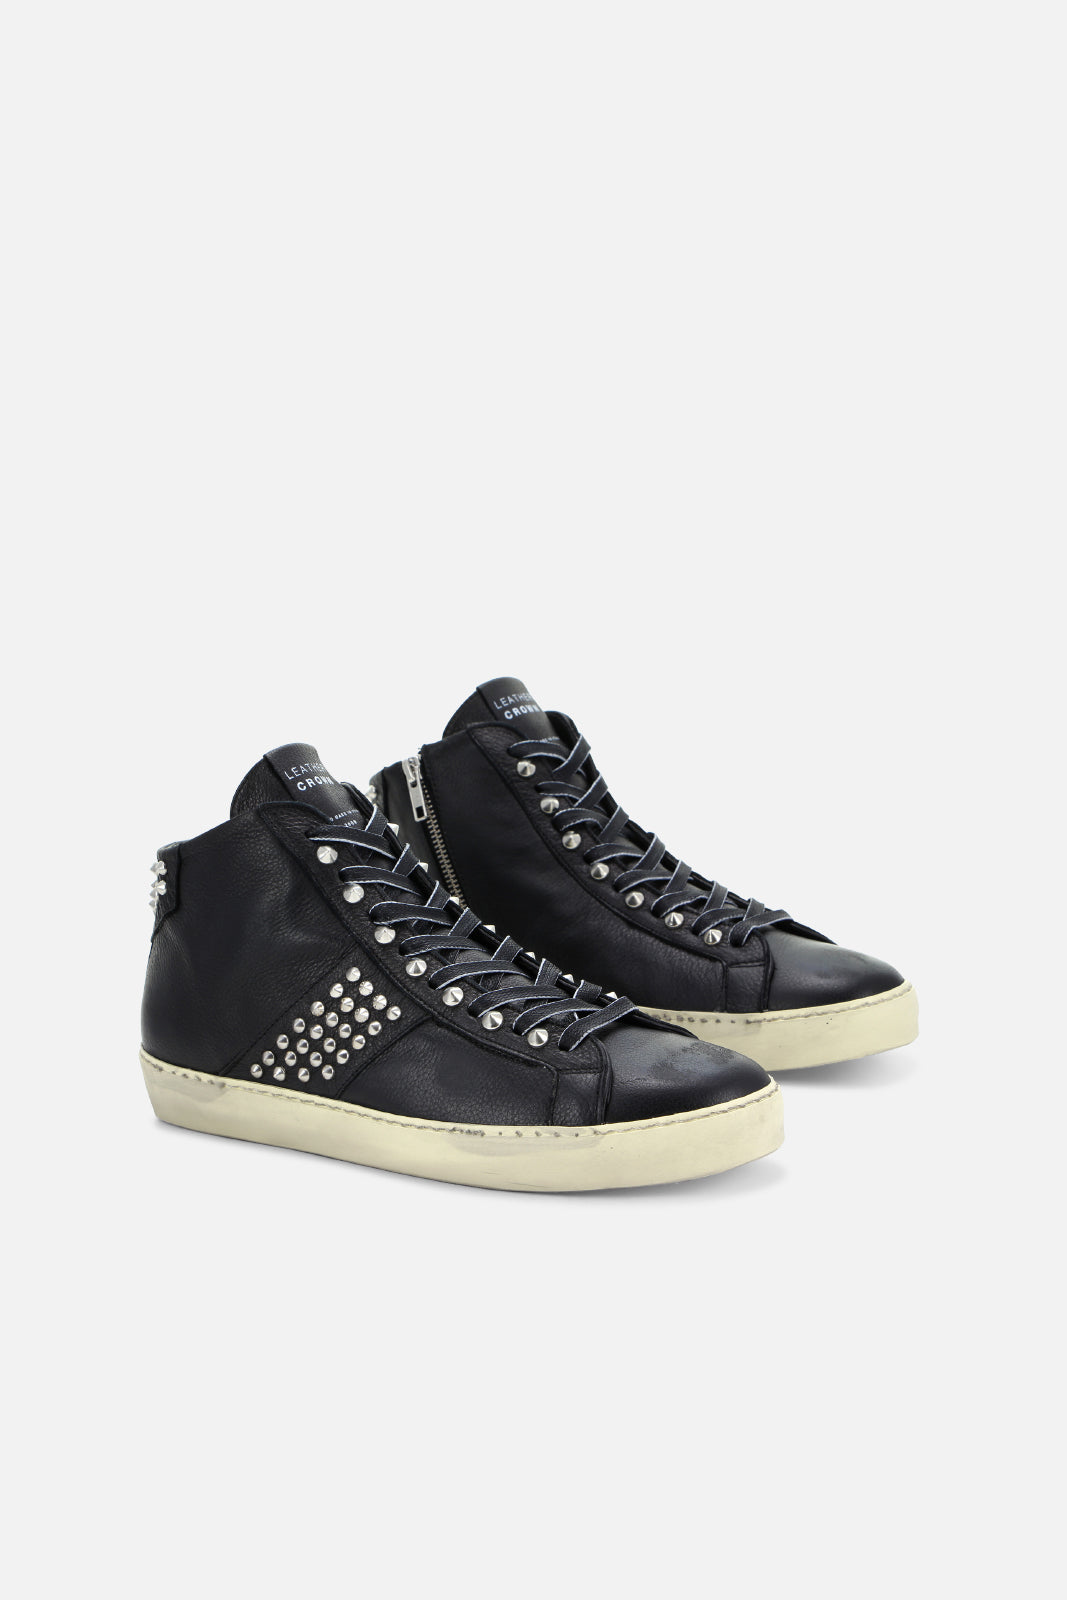 Iconic Stud High Top Sneaker – BANDIER